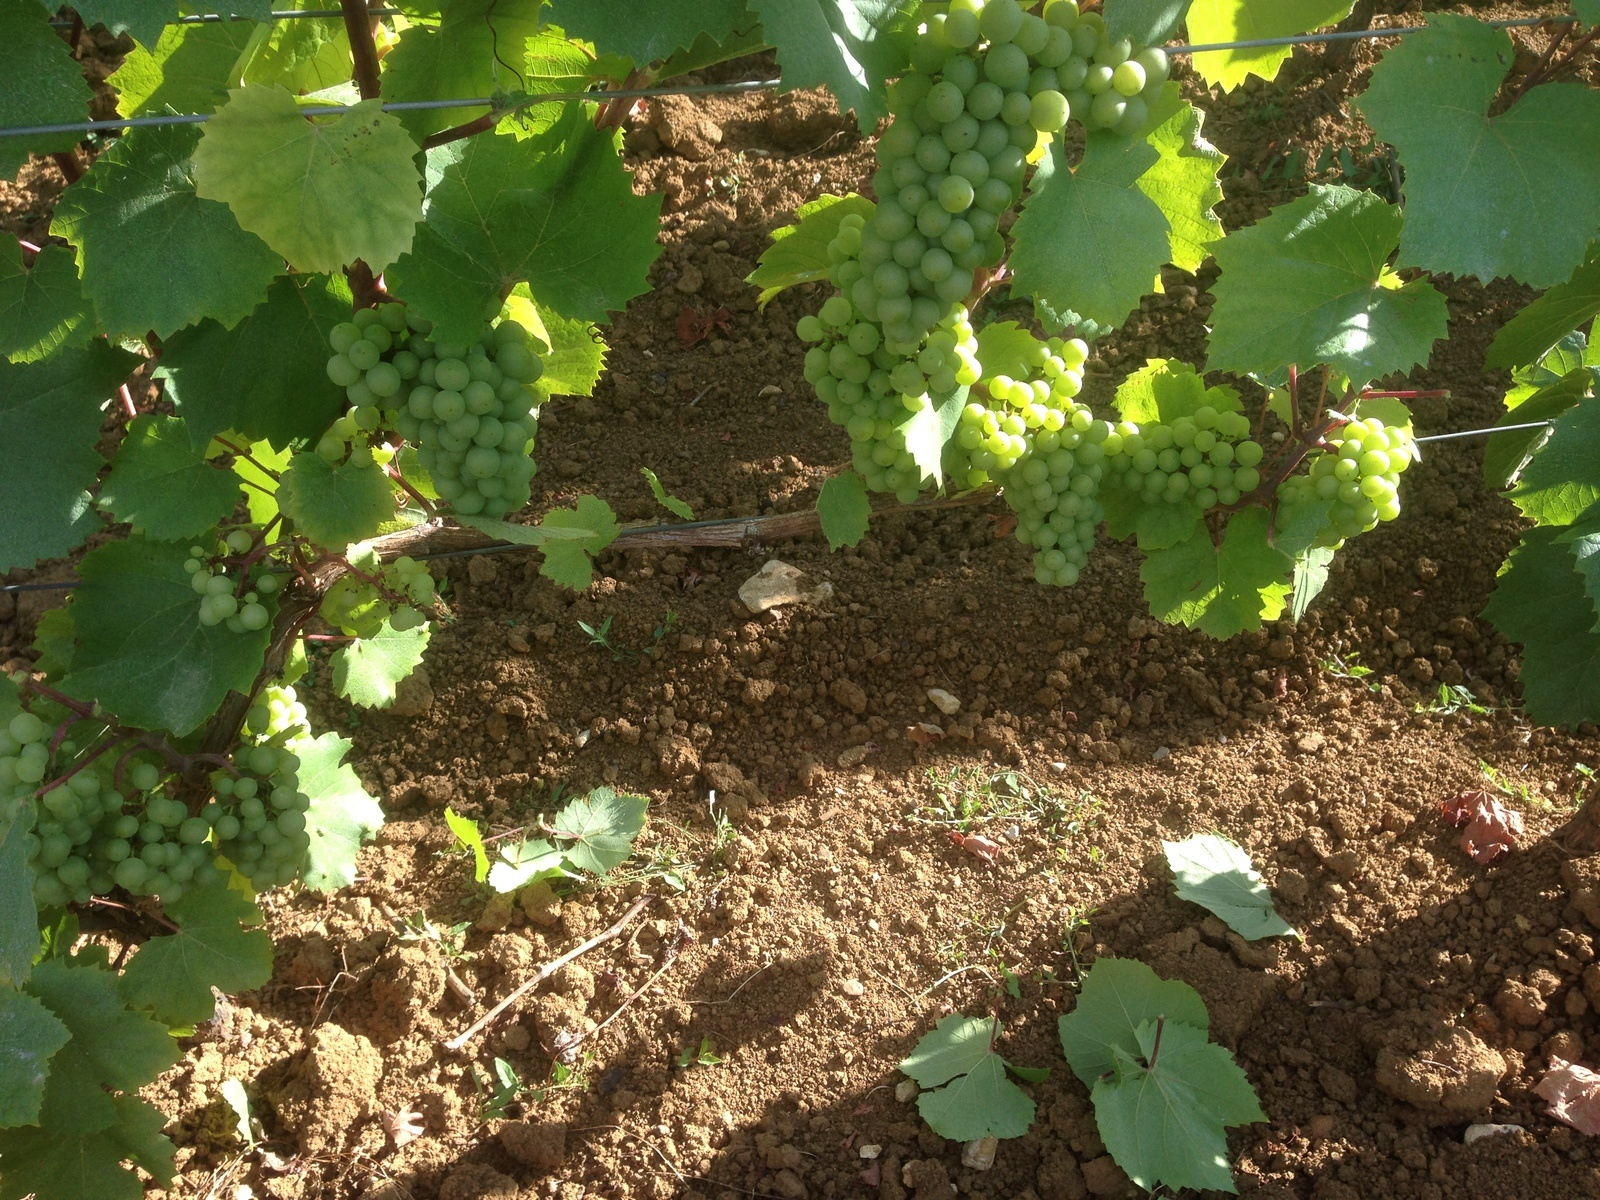 Chardonnay in Meursault, about 4-5 weeks away from harvest...